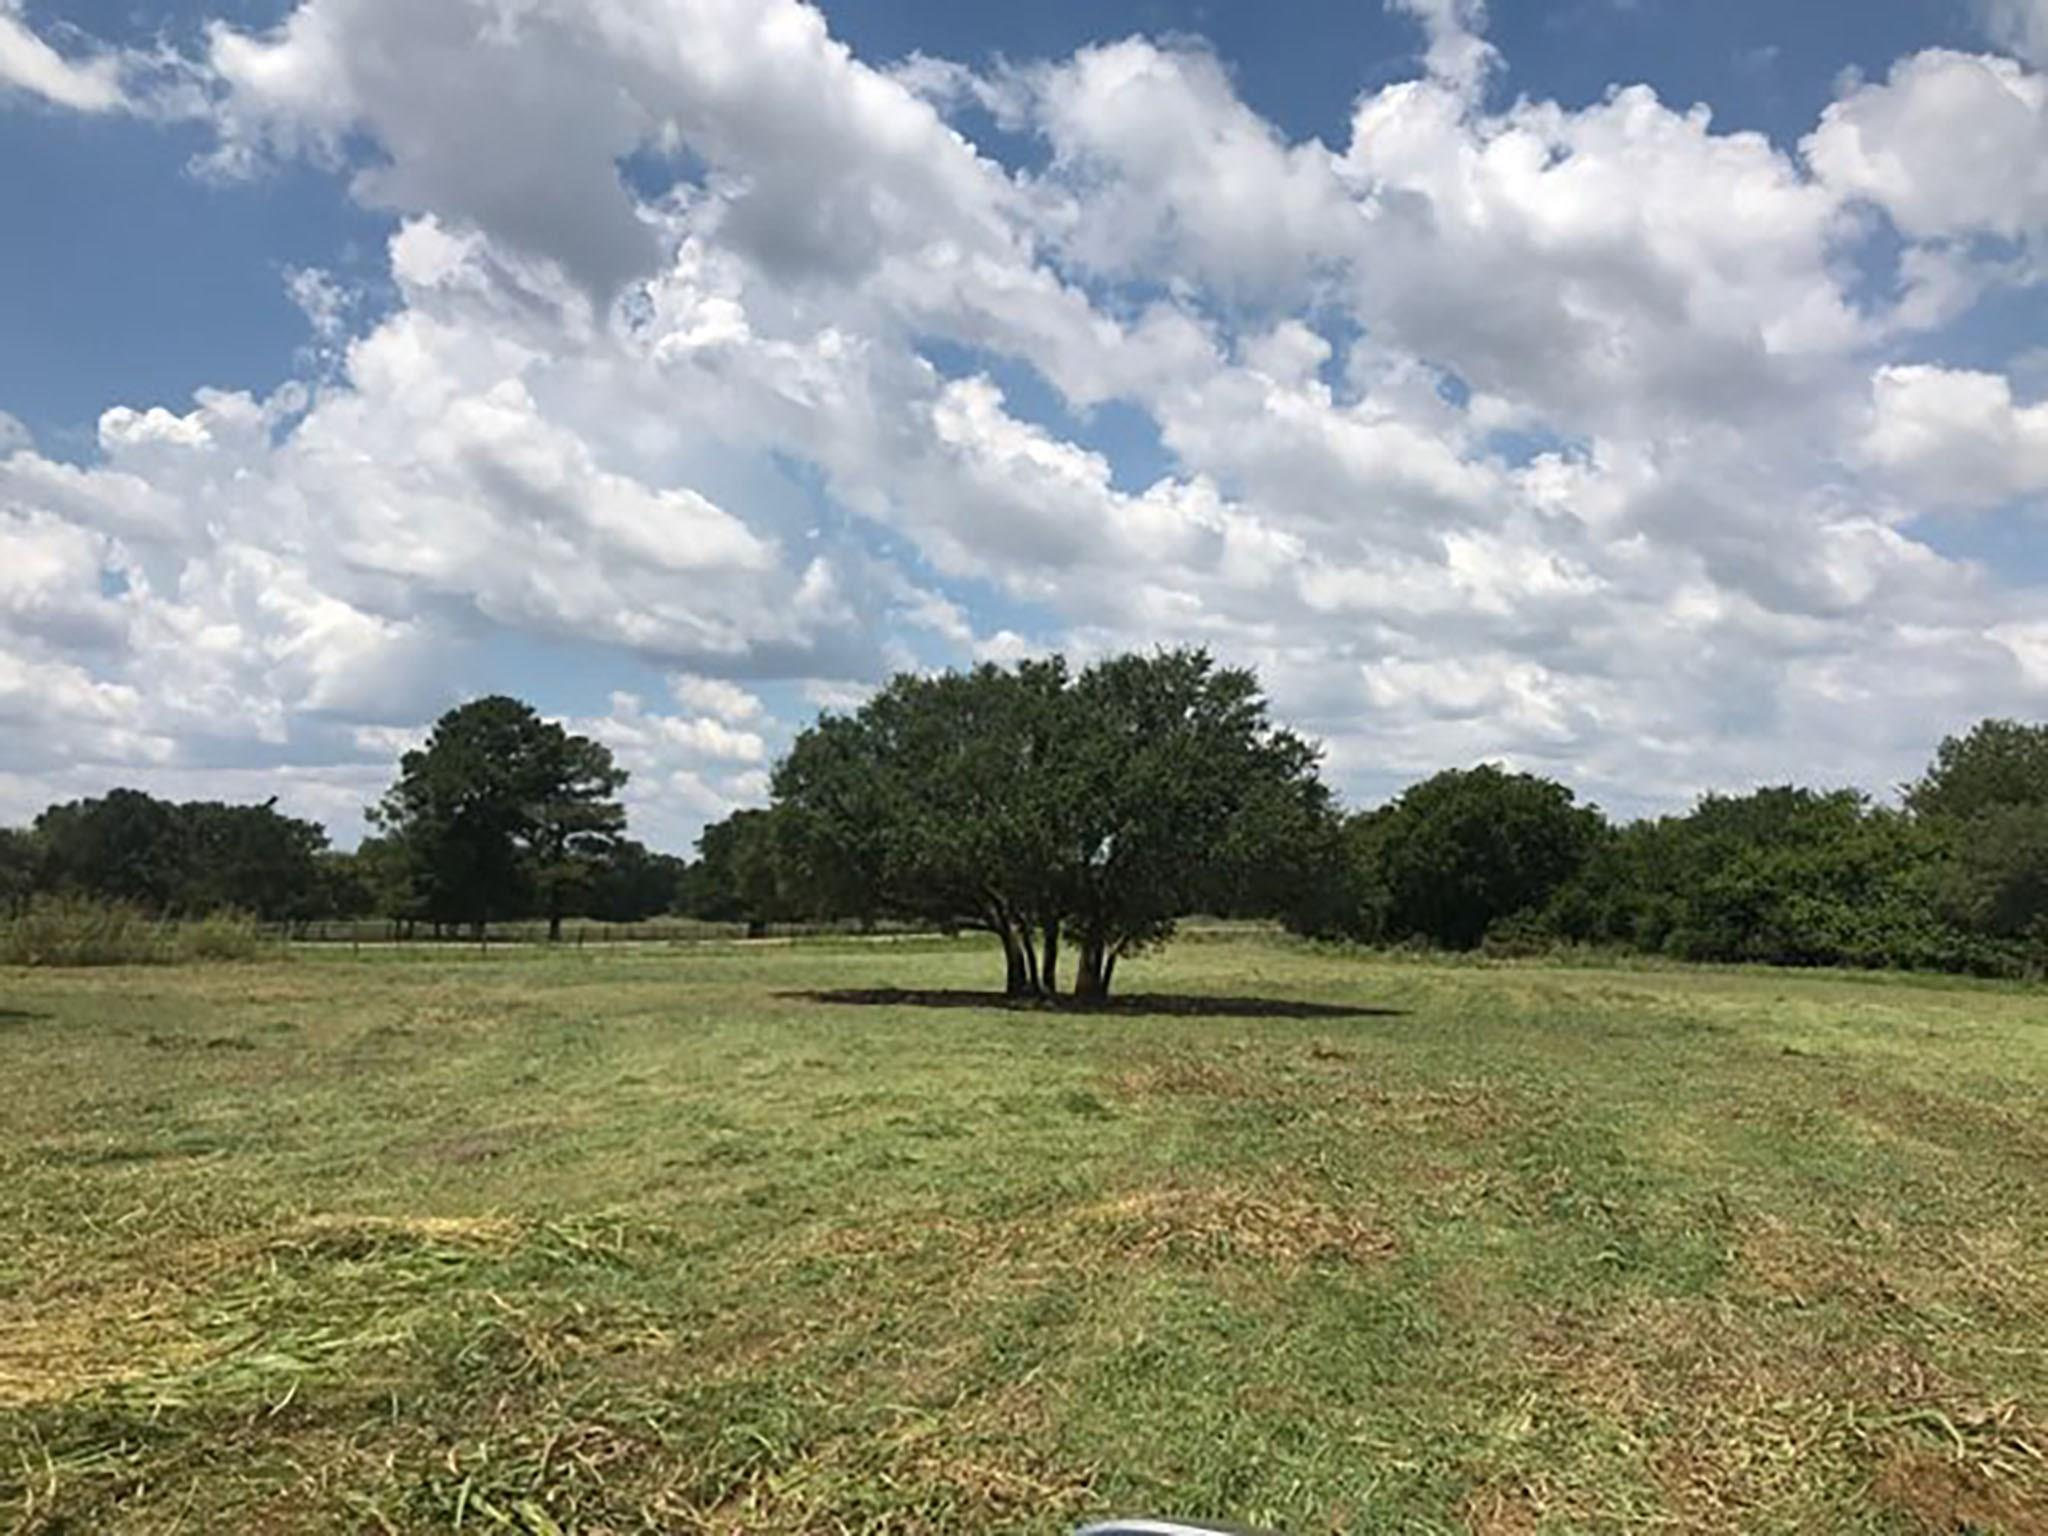 000 E Hills Rd Property Photo - Round Top, TX real estate listing